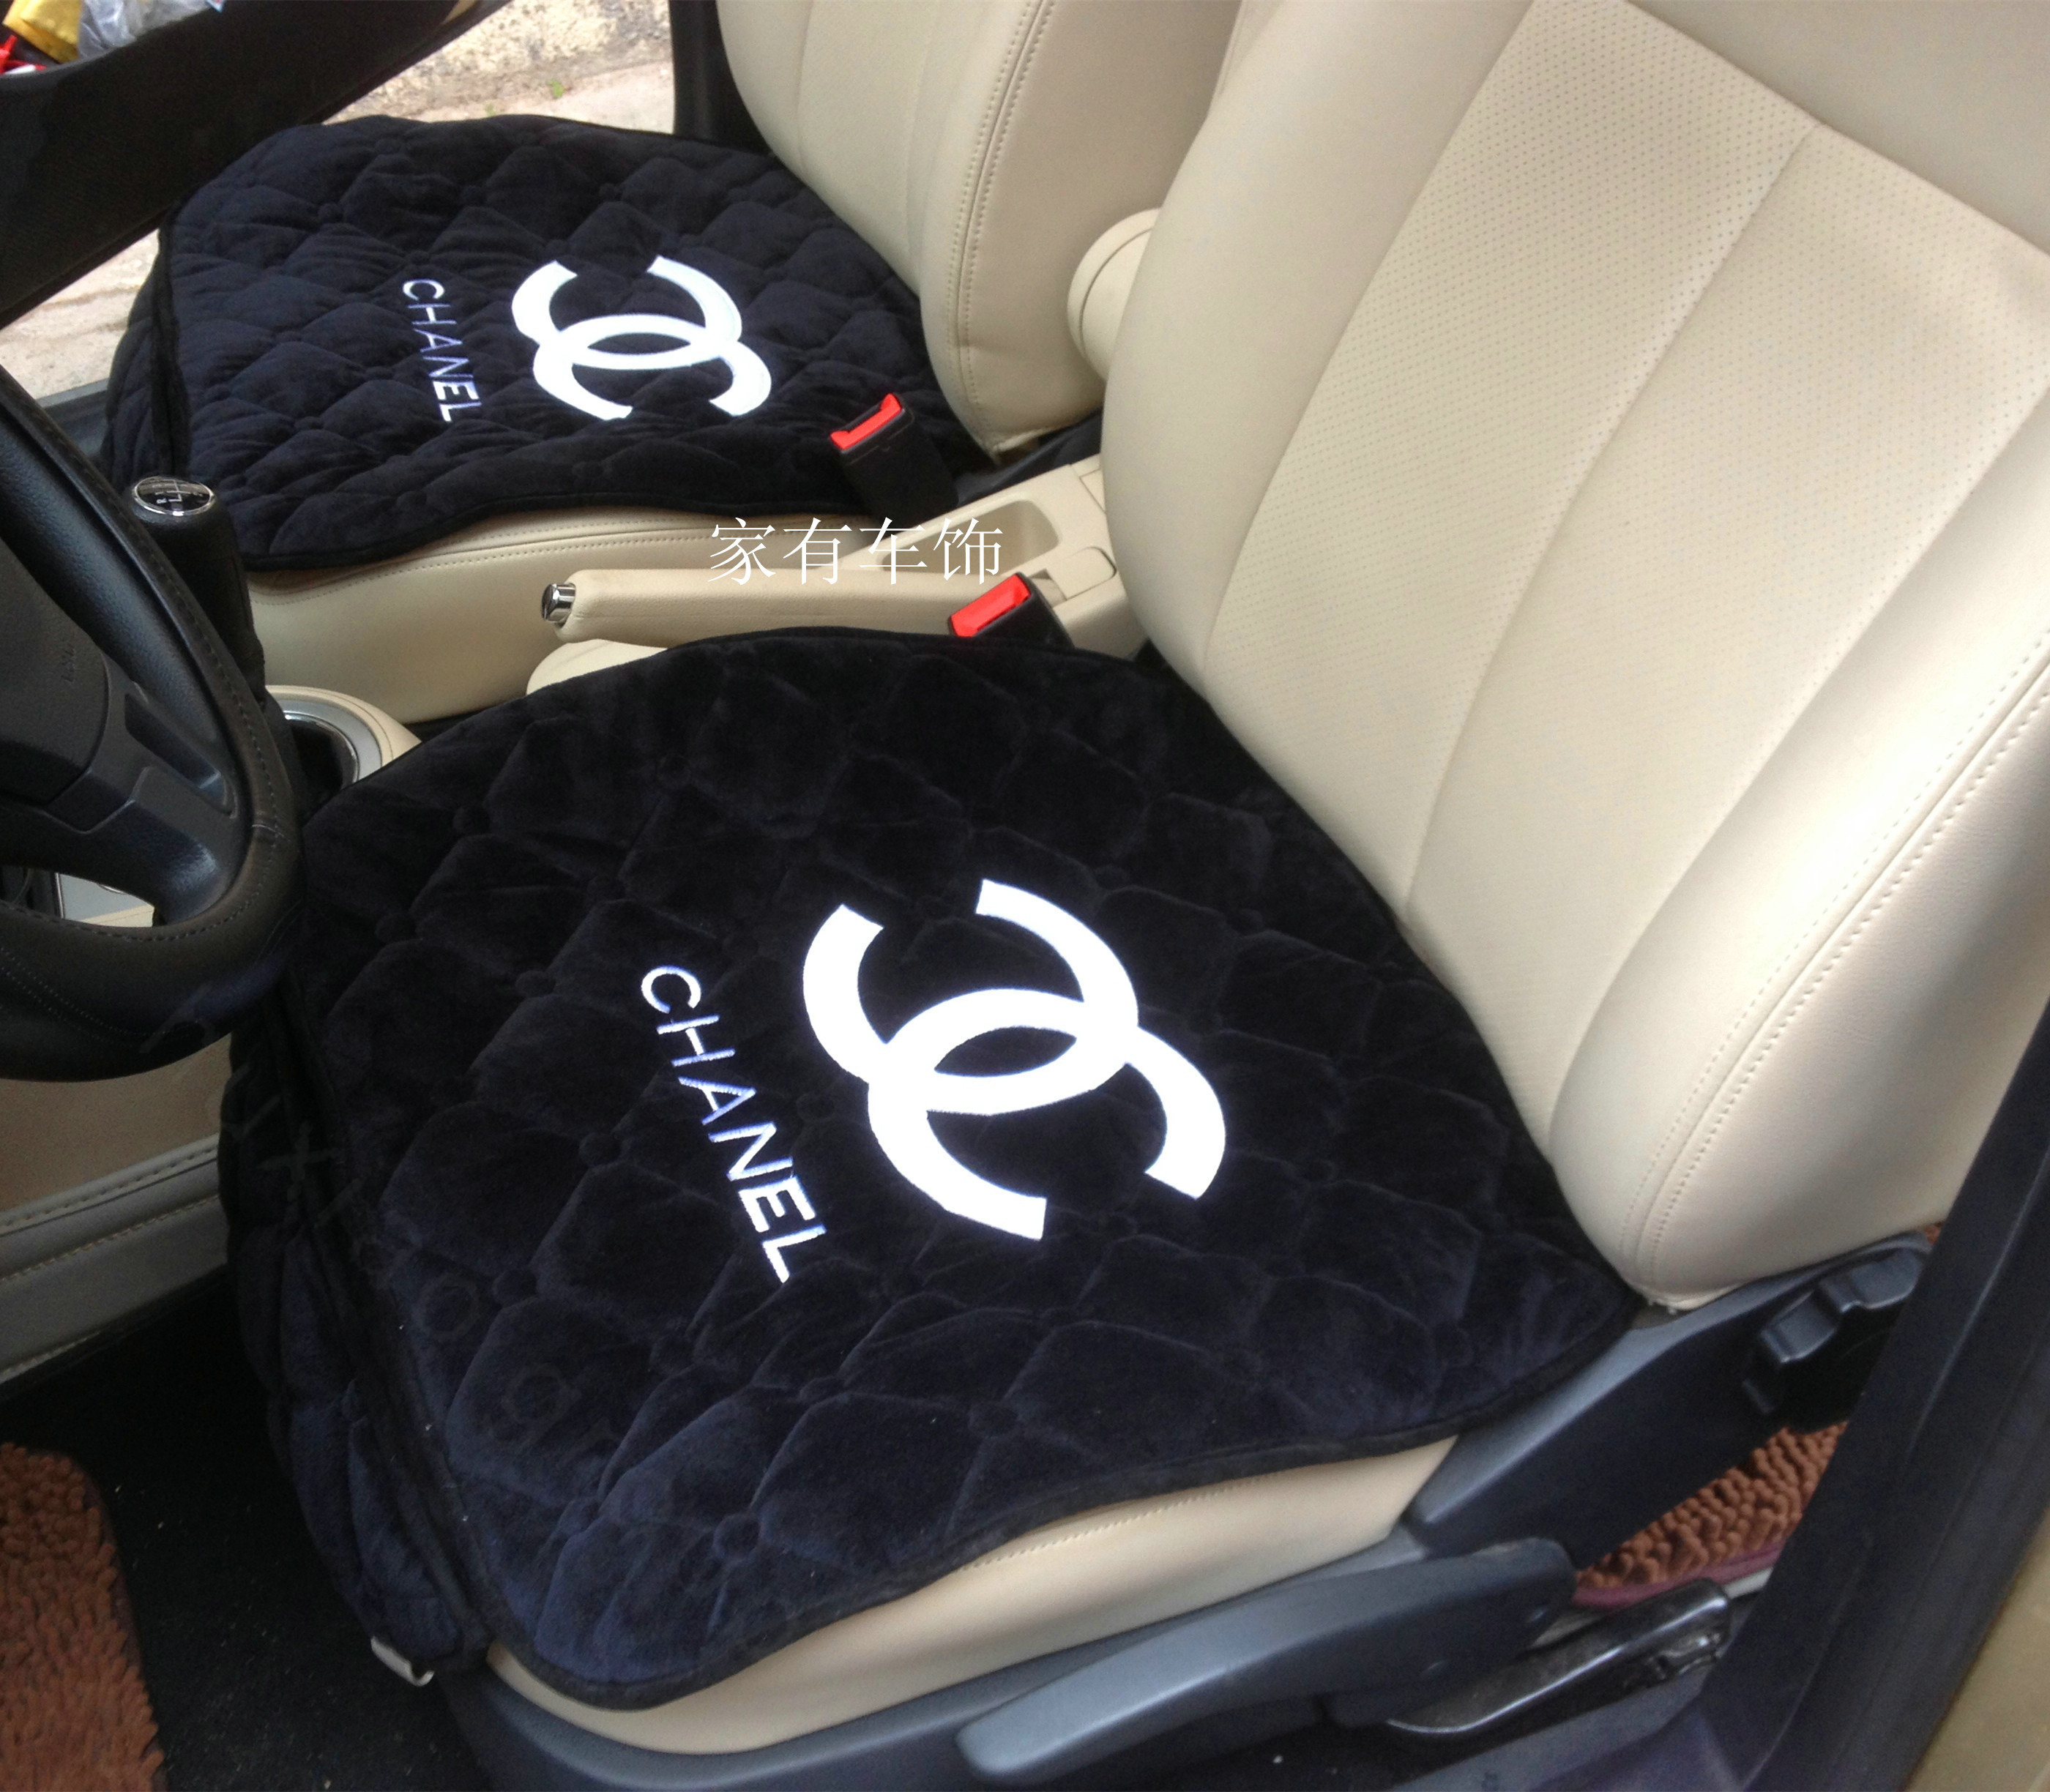 buy wholesale 3pcs top cotton chanel car seat covers universal pads sets auto seat cushions. Black Bedroom Furniture Sets. Home Design Ideas